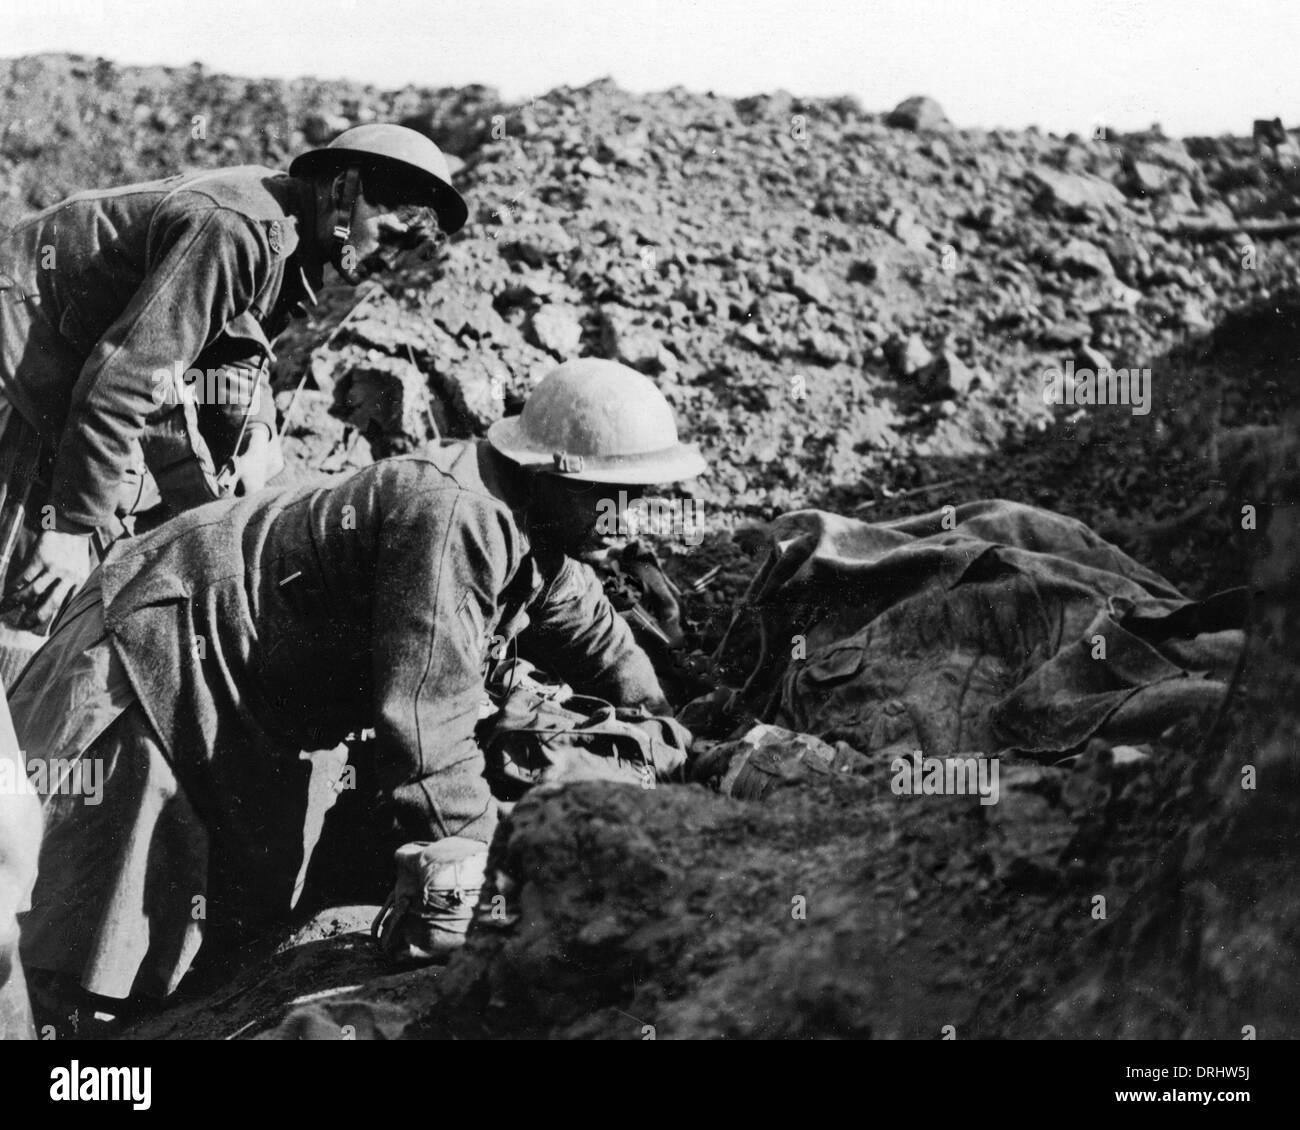 British soldiers in a trench, Western Front, WW1 - Stock Image